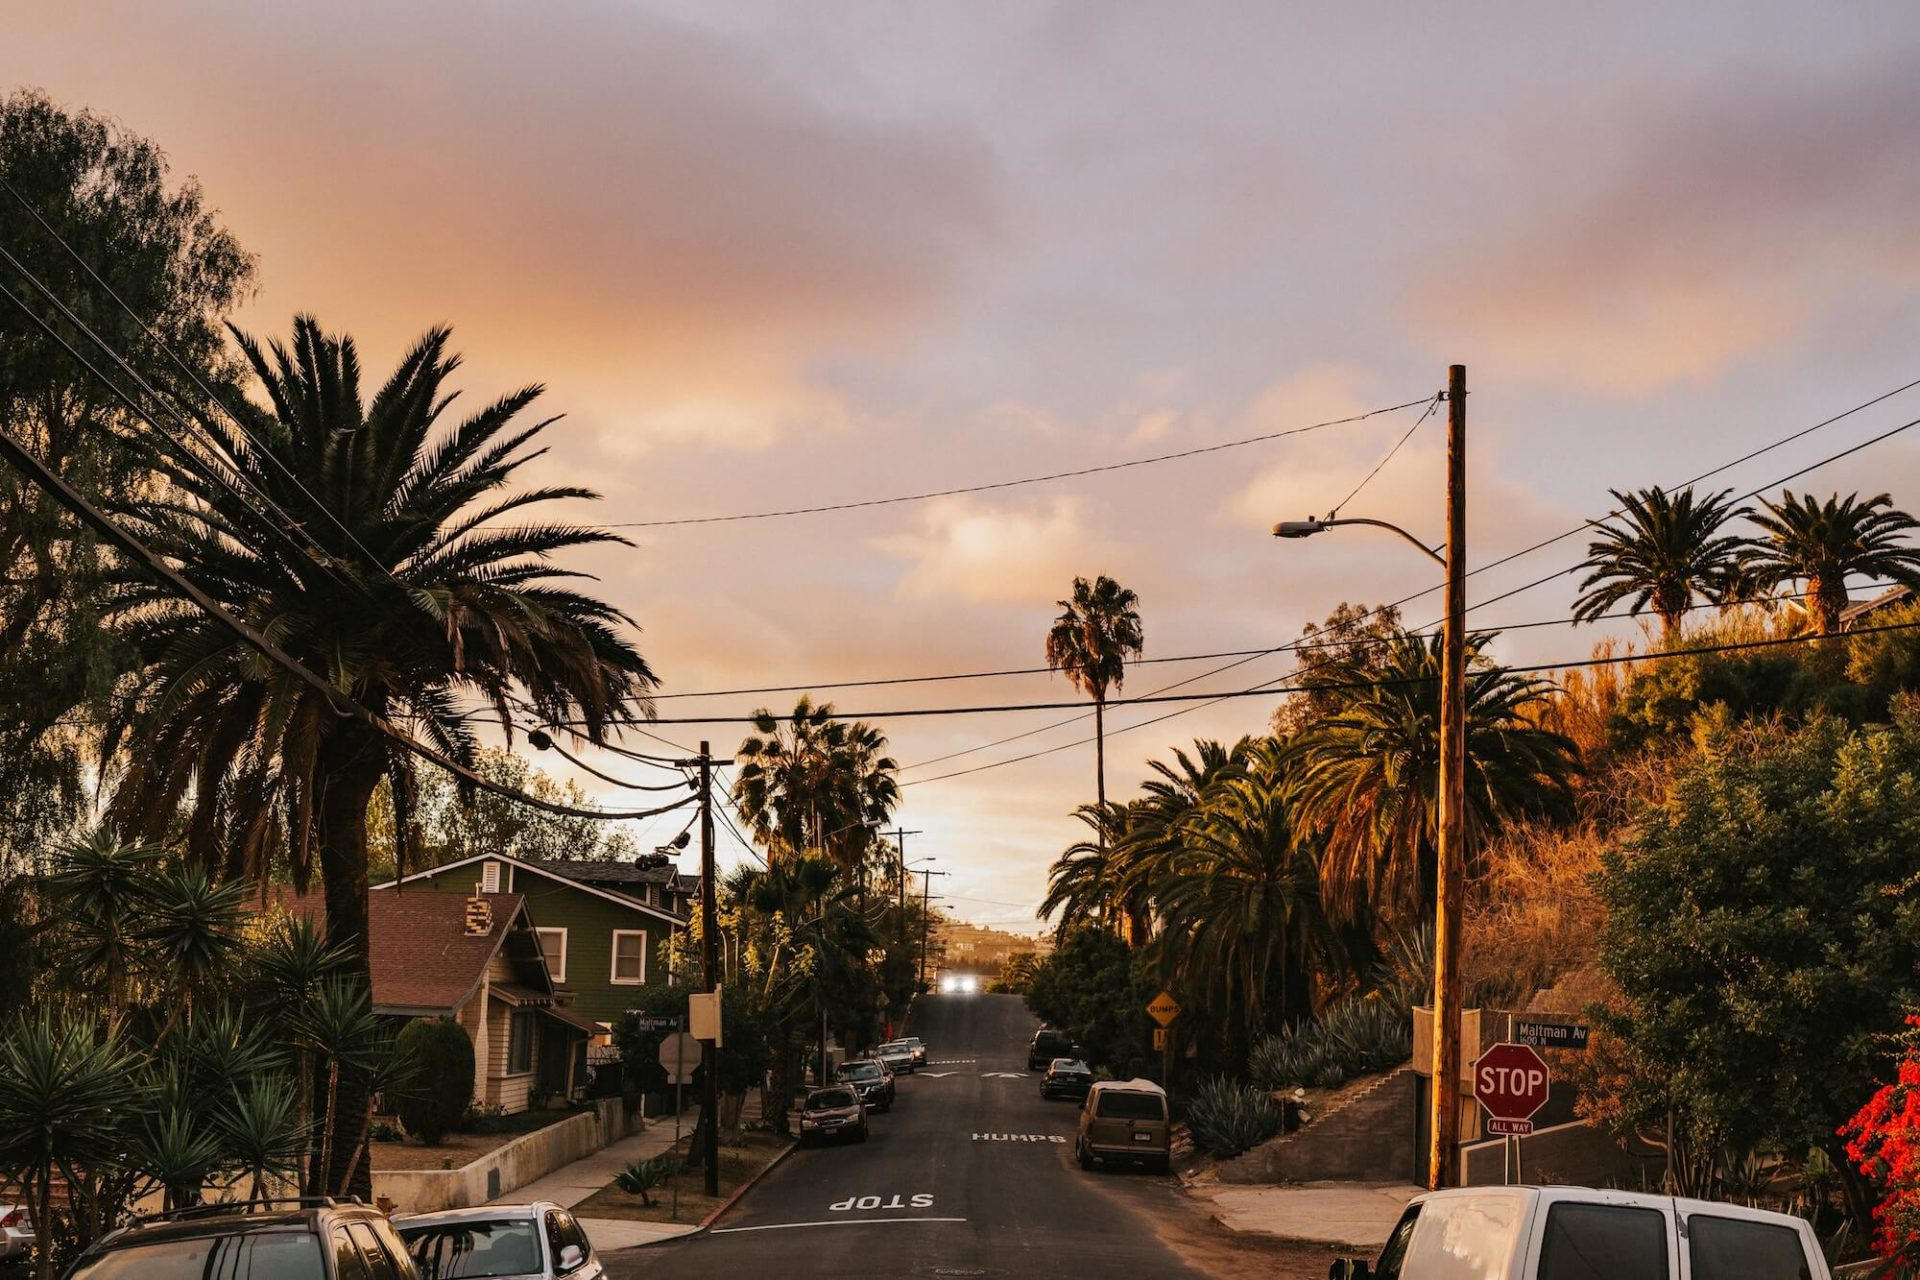 Palm trees lining residential road at sunset